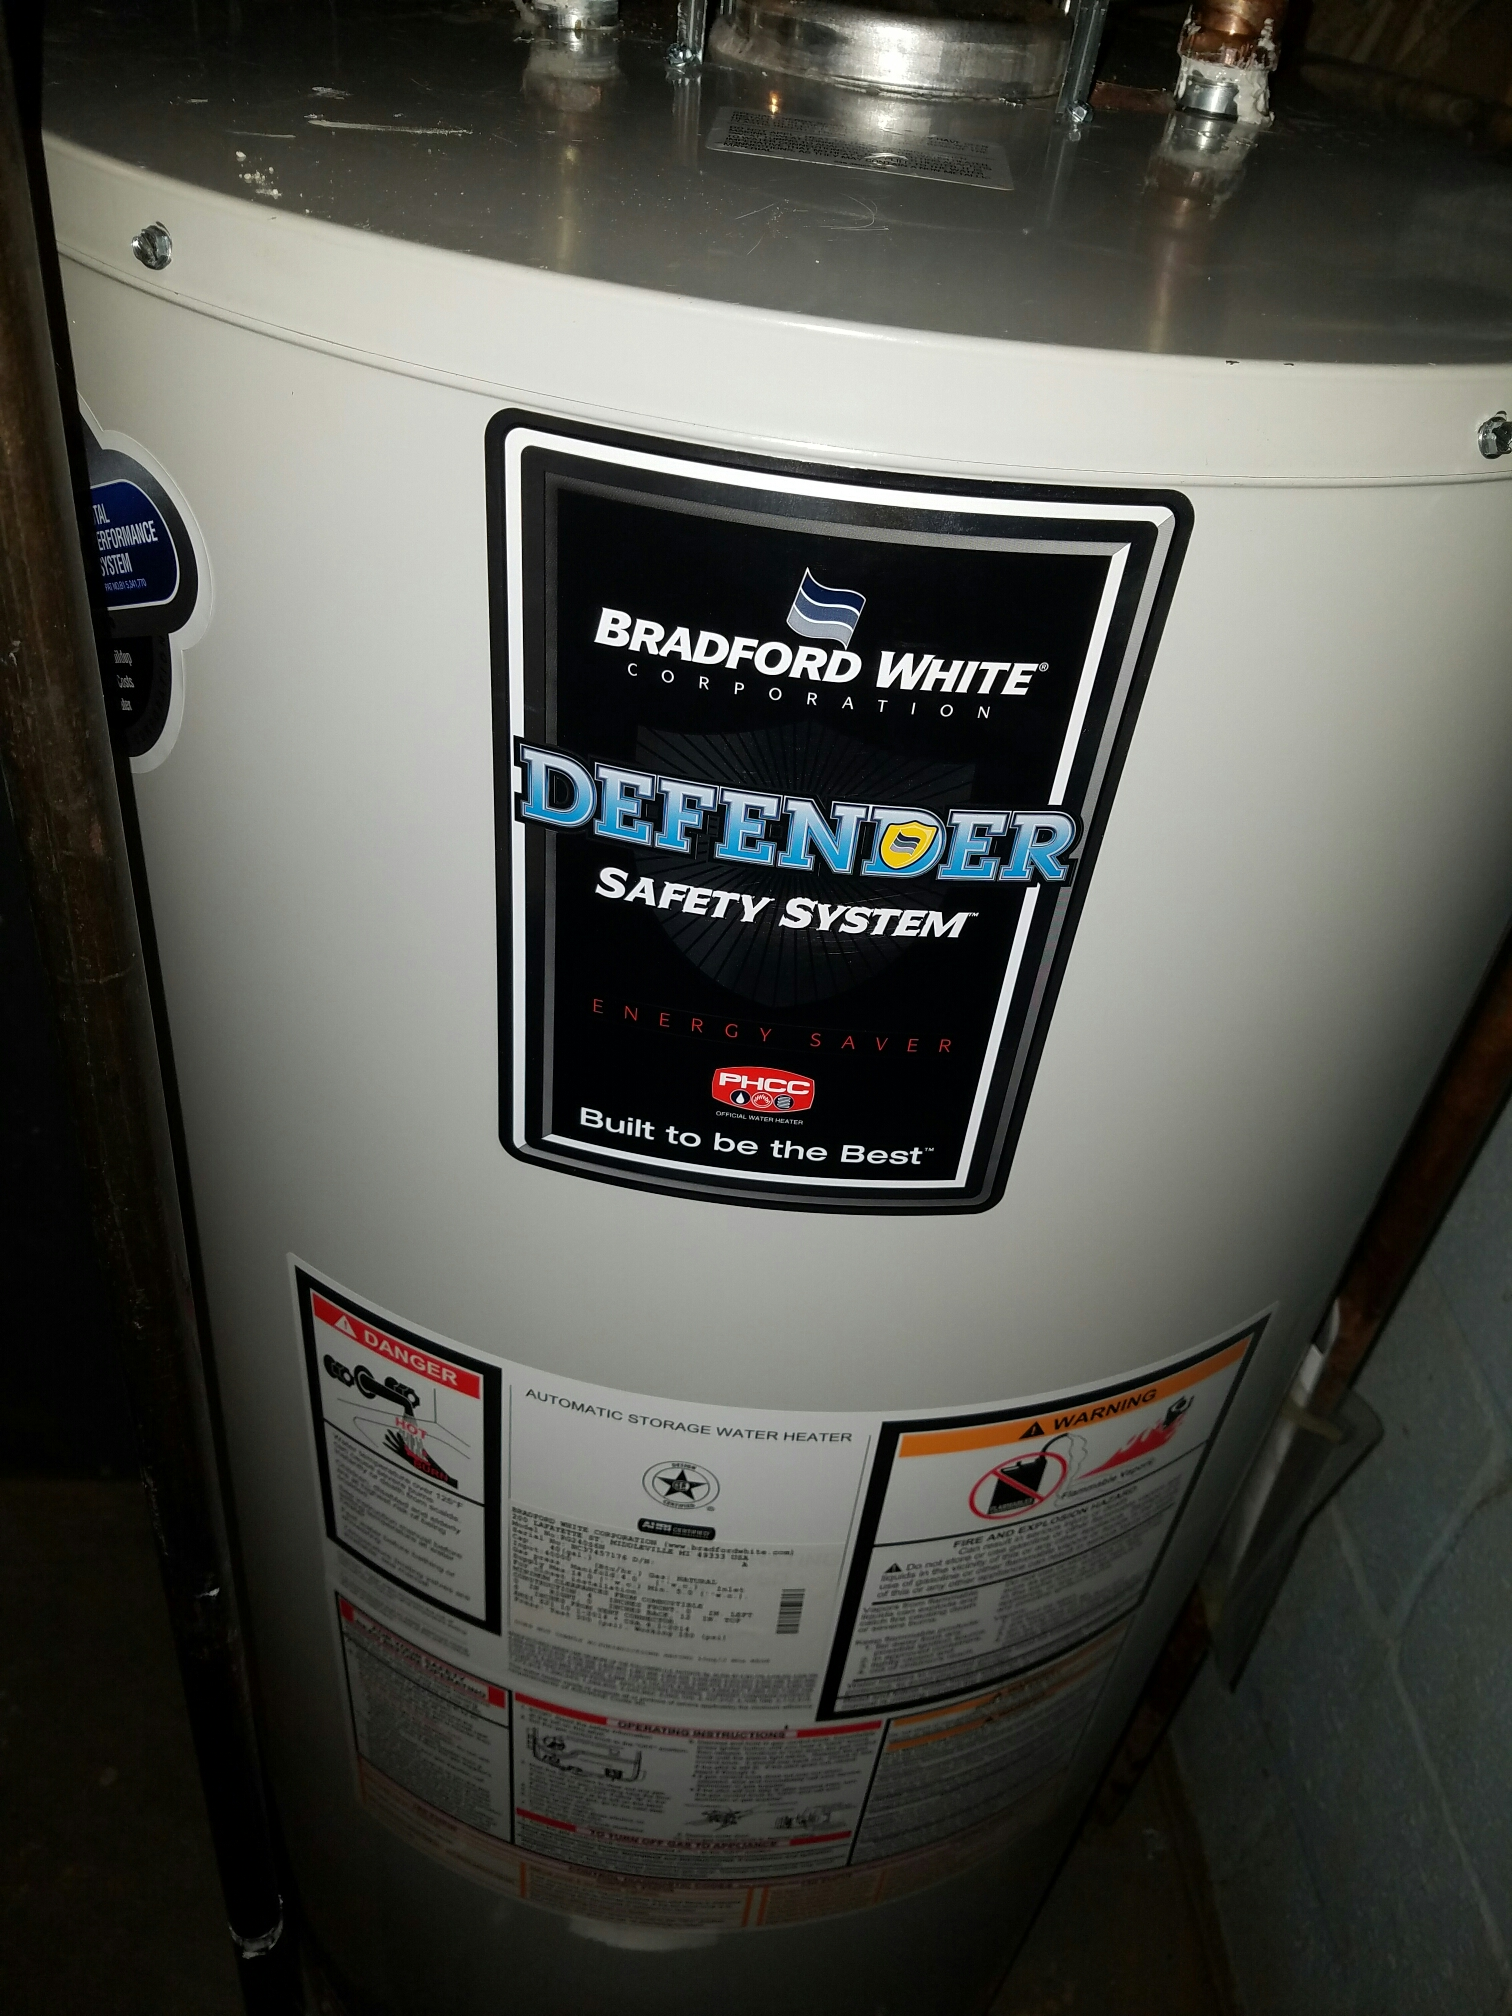 South Brunswick Township, NJ - Remove A.O. Smith water heater install Bradford White 40 gallon  Water heater clean and service Ruud Furance Check and charge r22 Ruud Air Conditioning condenser